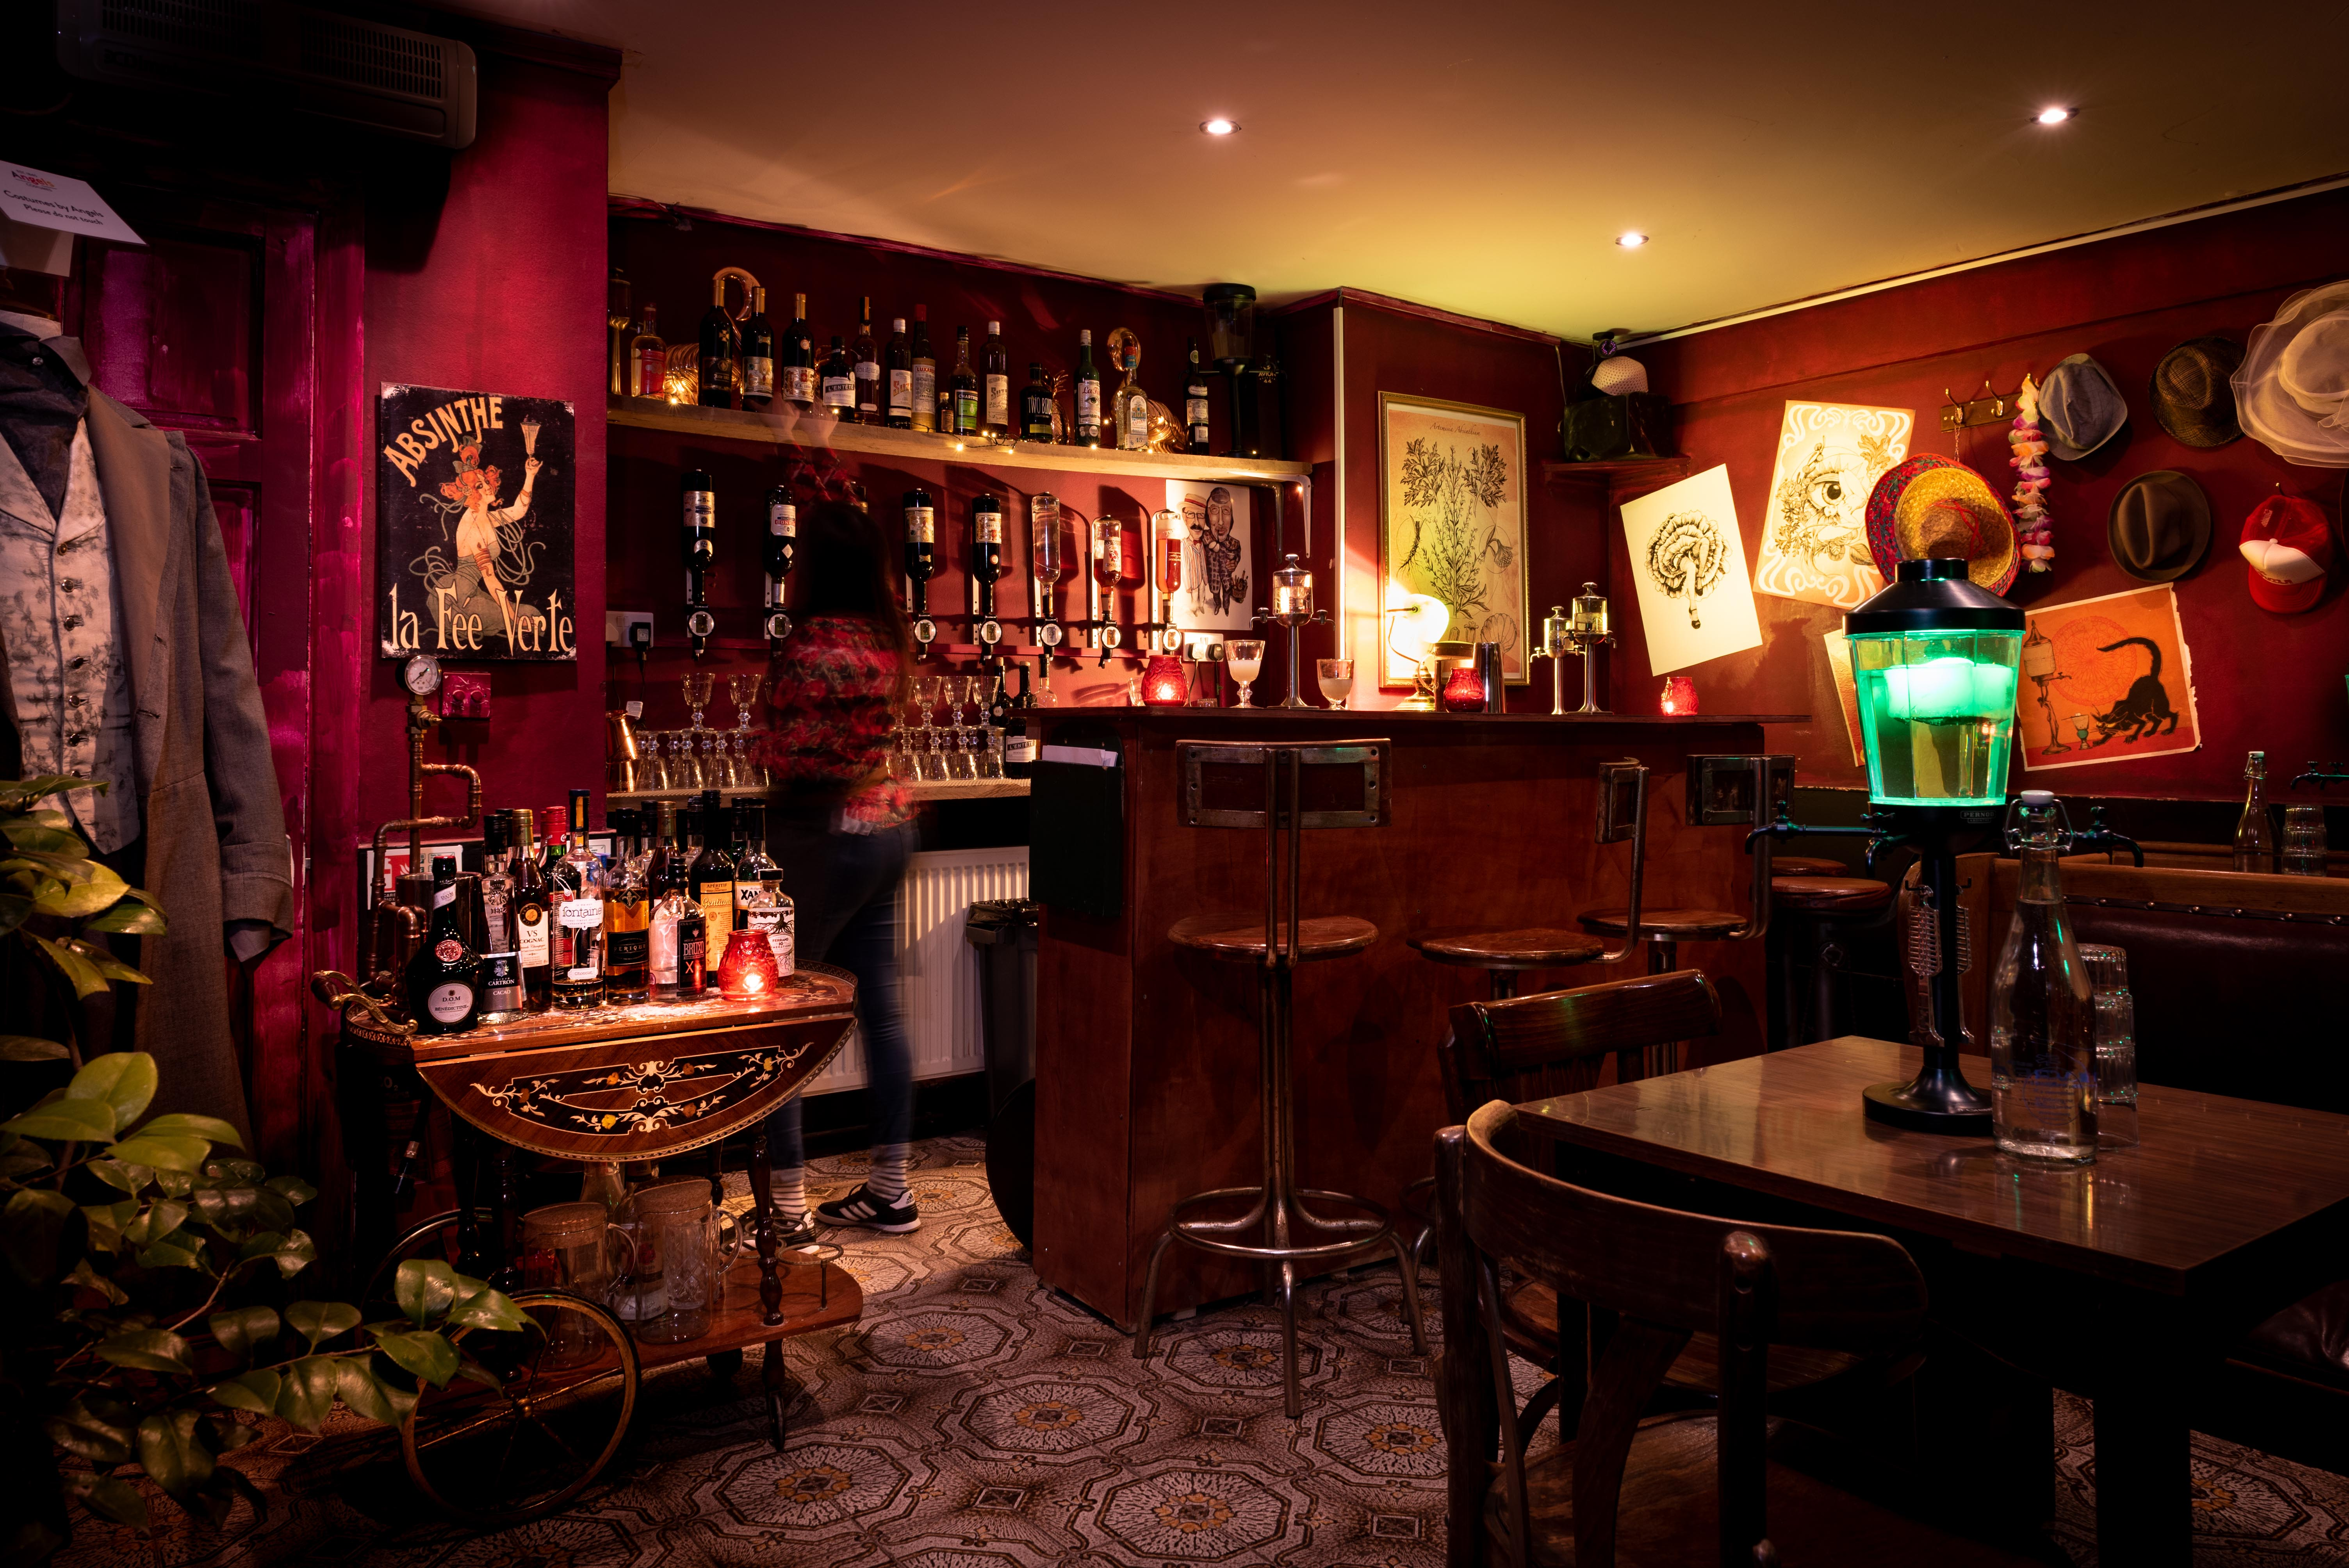 where can i drink absinthe in london